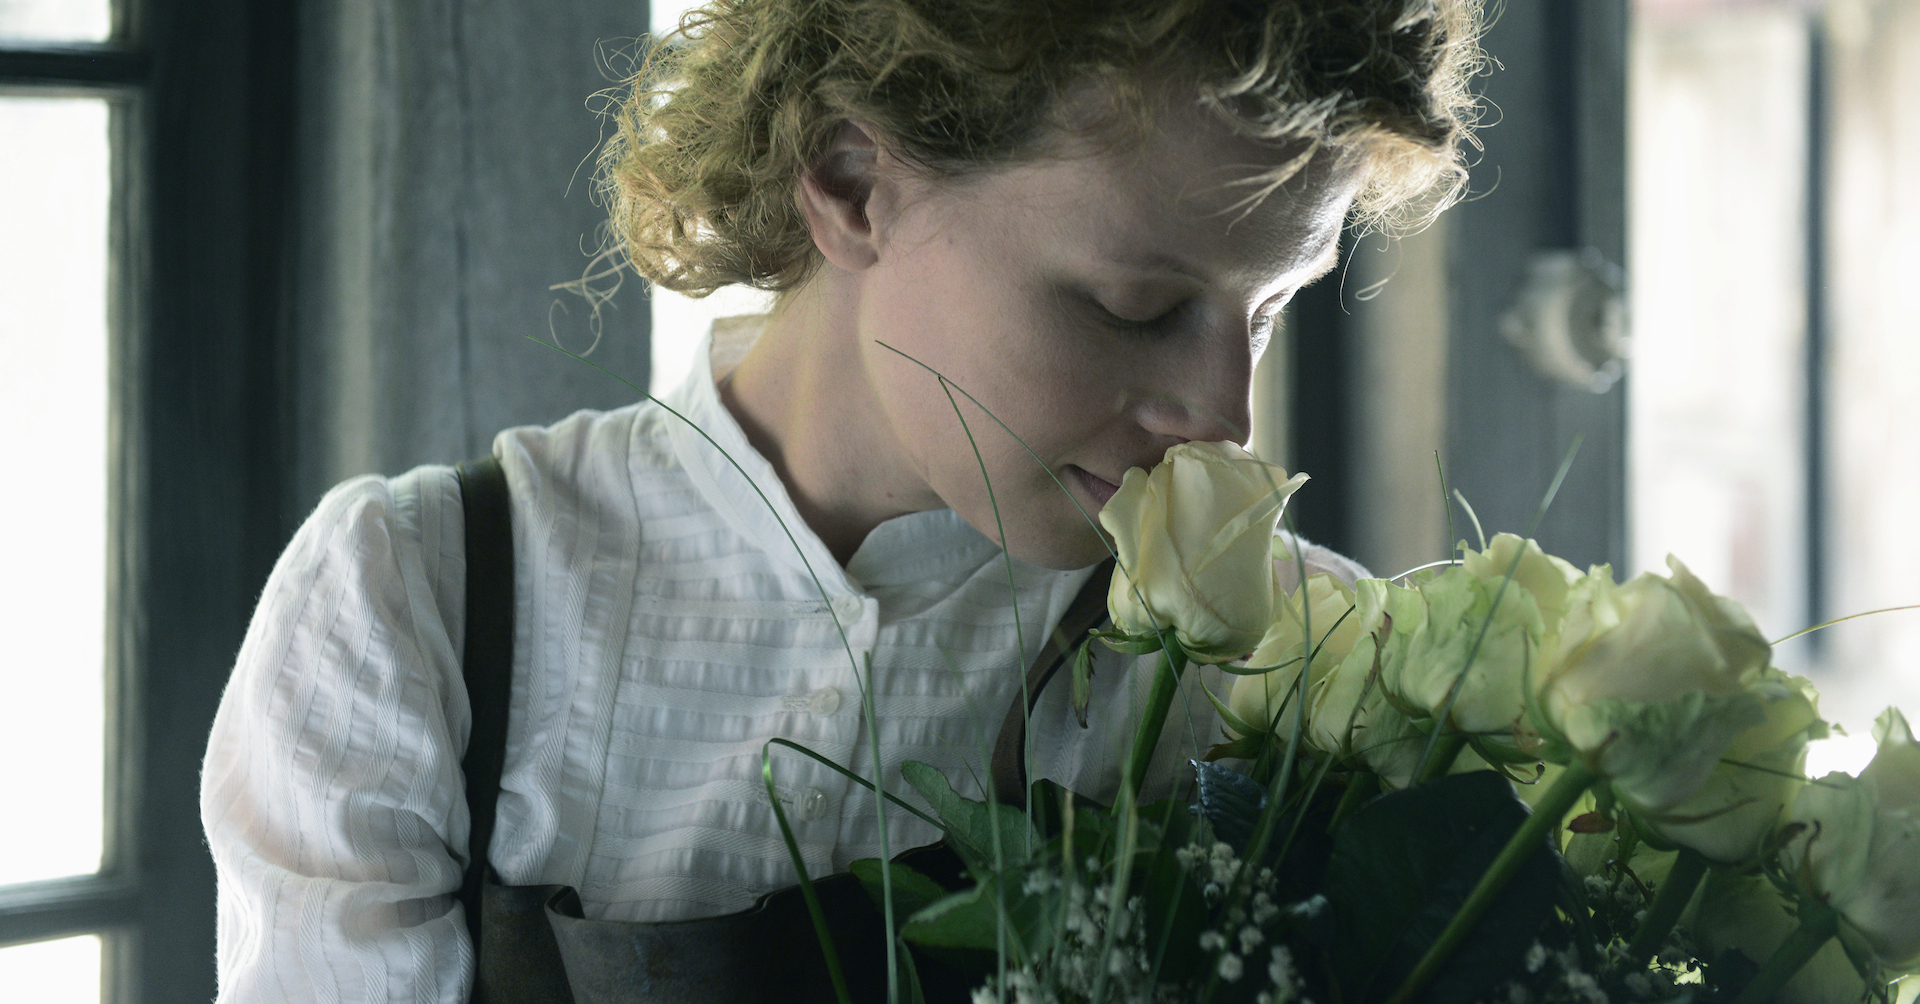 MARIE CURIE,THE COURAGE OF KNOWLEDGE